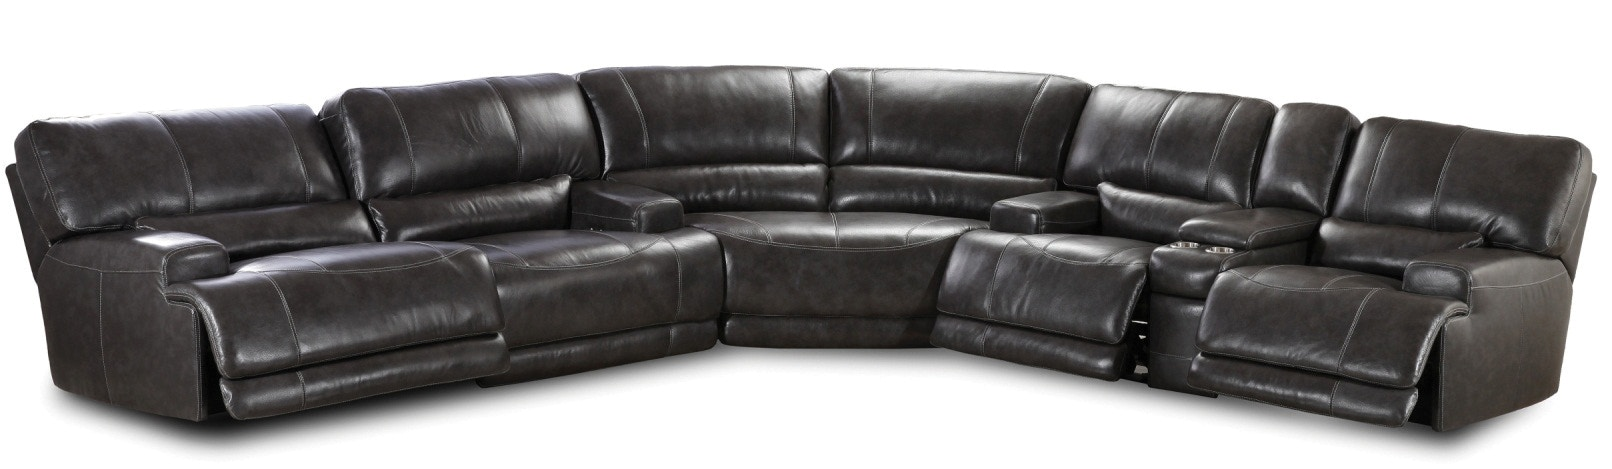 Easy Living Motion Bliss 3 Piece Reclining Sectional G65382